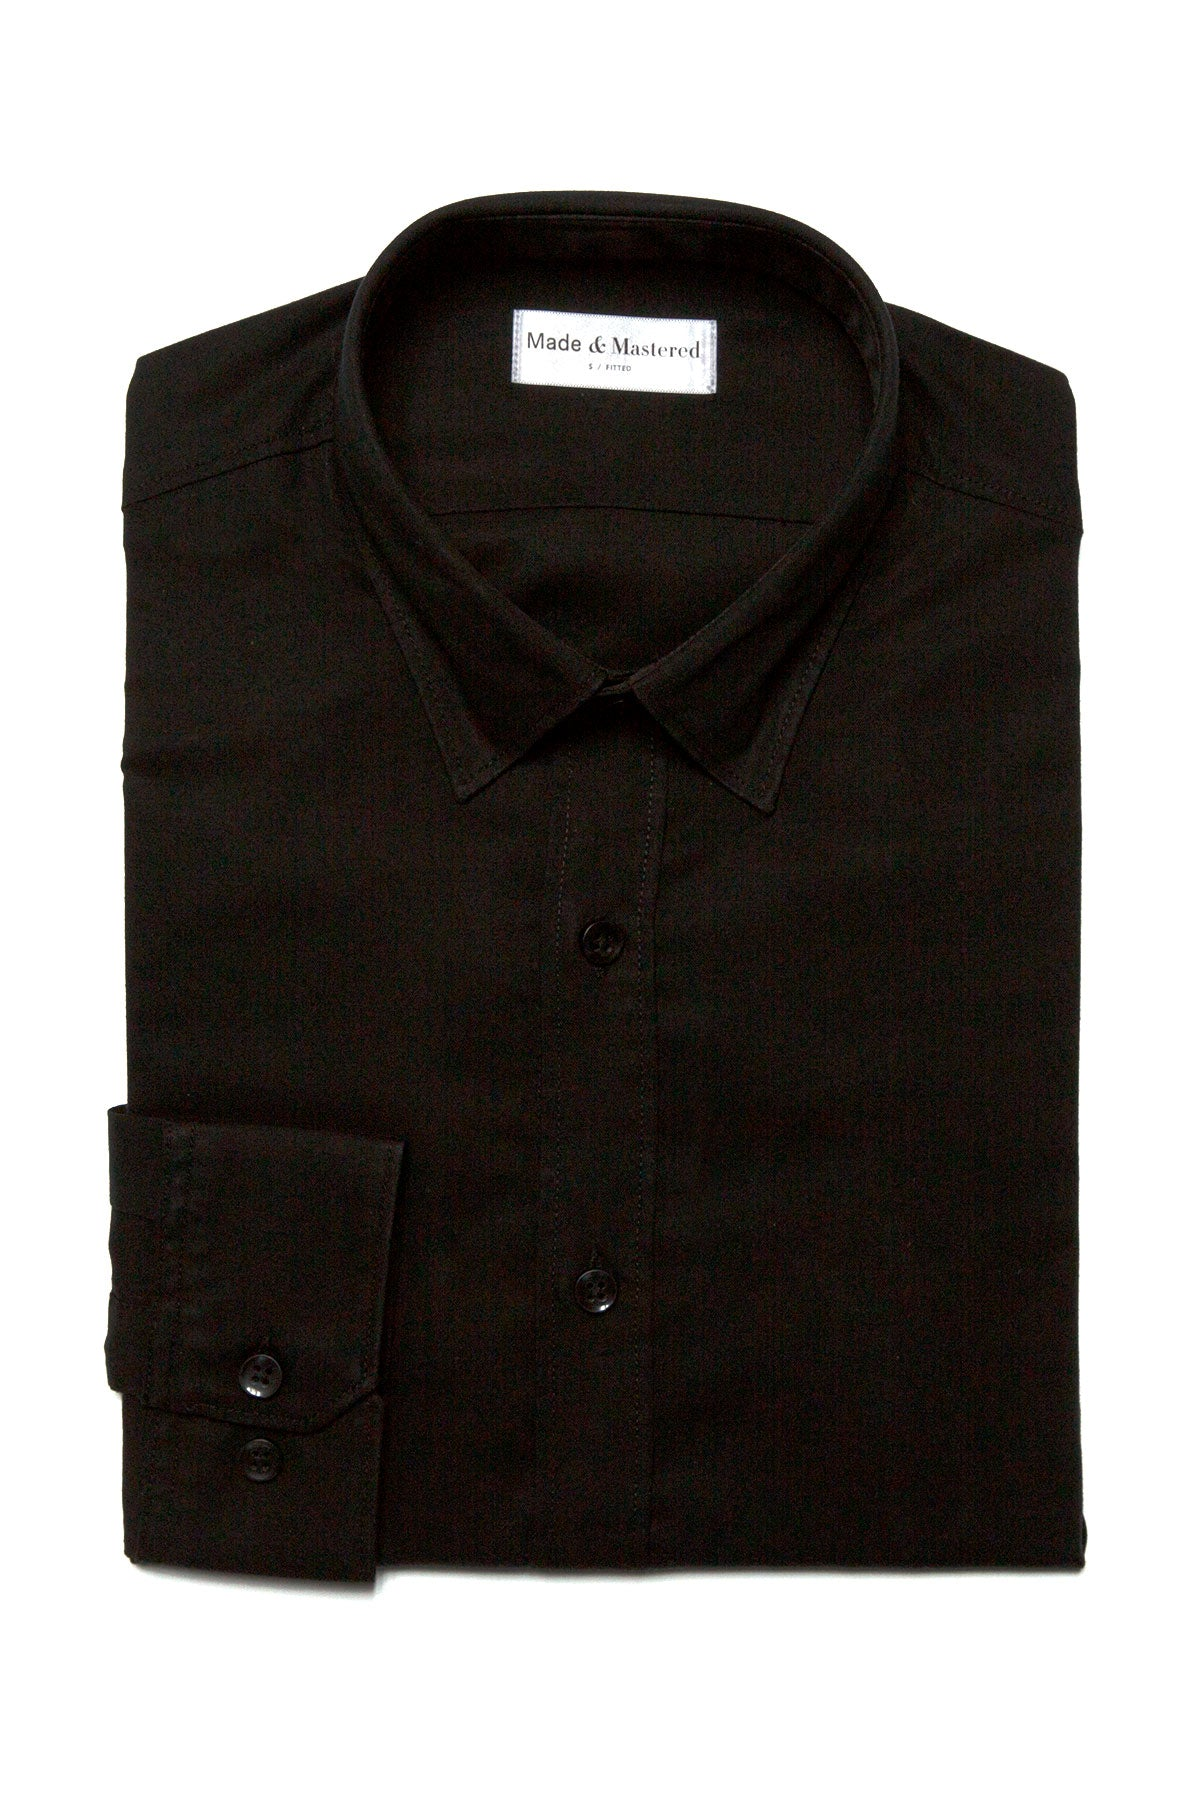 a4e76474c7cd The Trotter Button Up